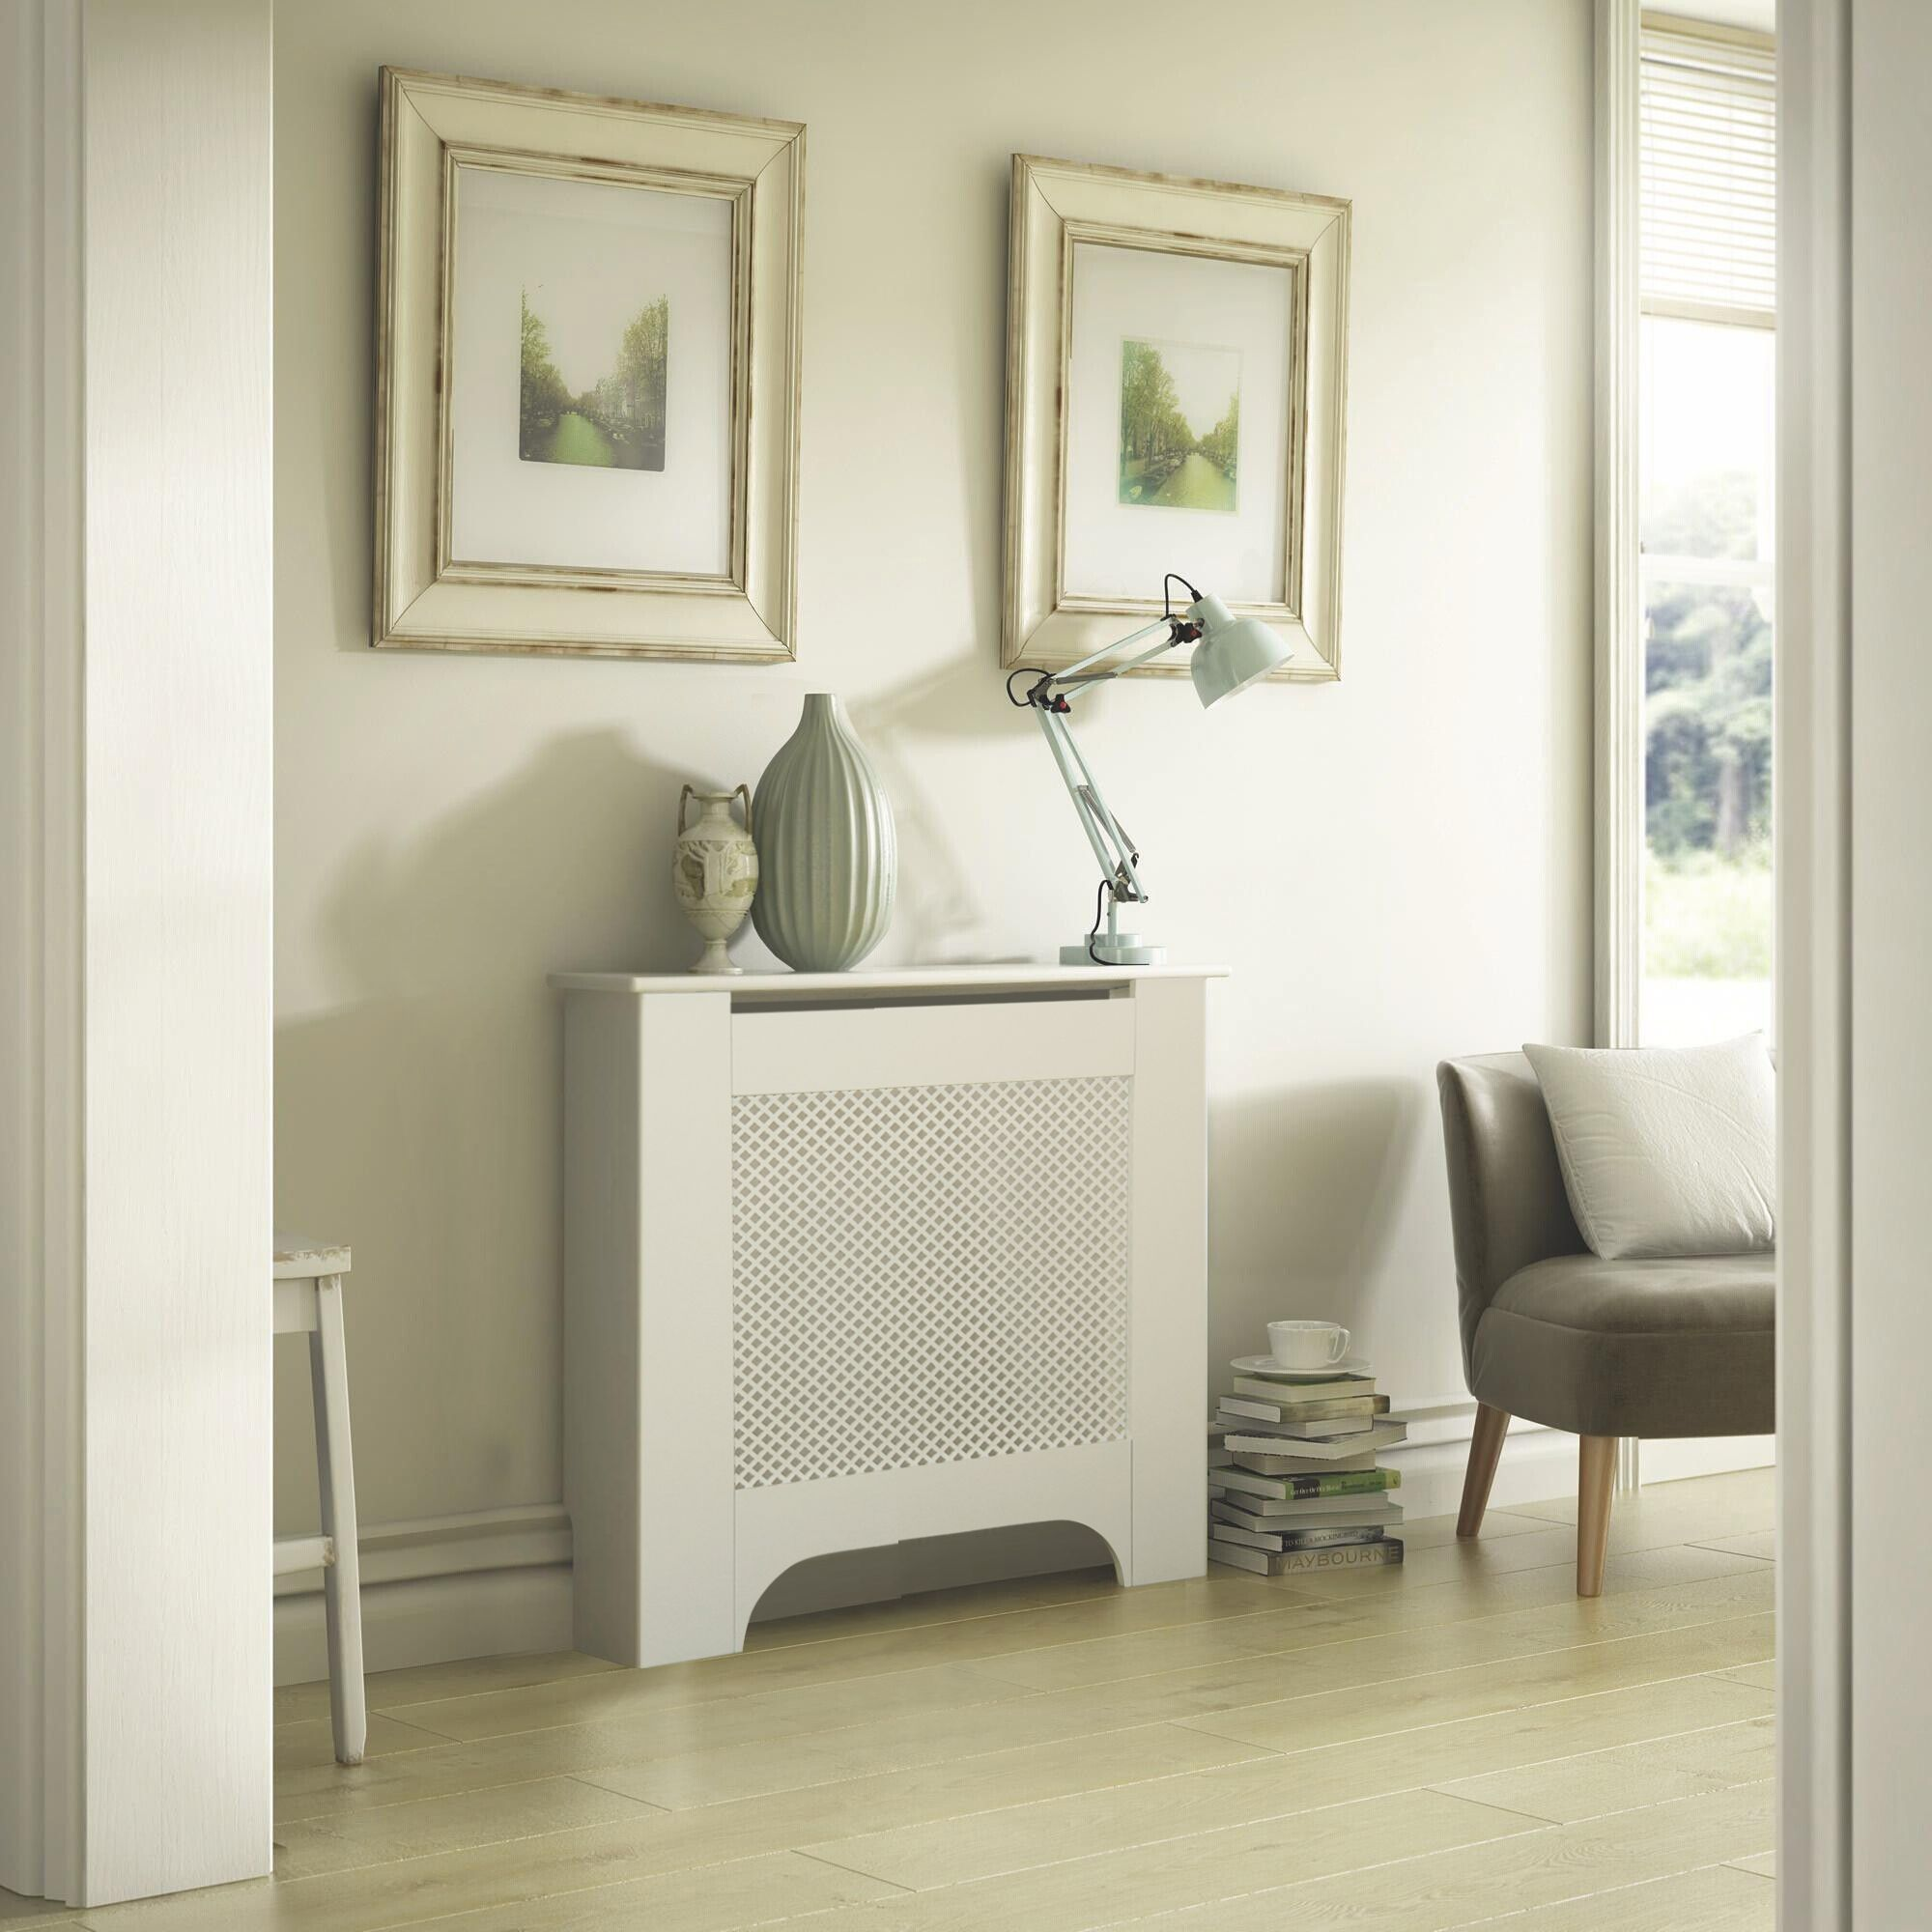 Bathroom Cabinets Uk Bq Mayfair Mini White Painted Radiator Cover Departments Diy At Bq